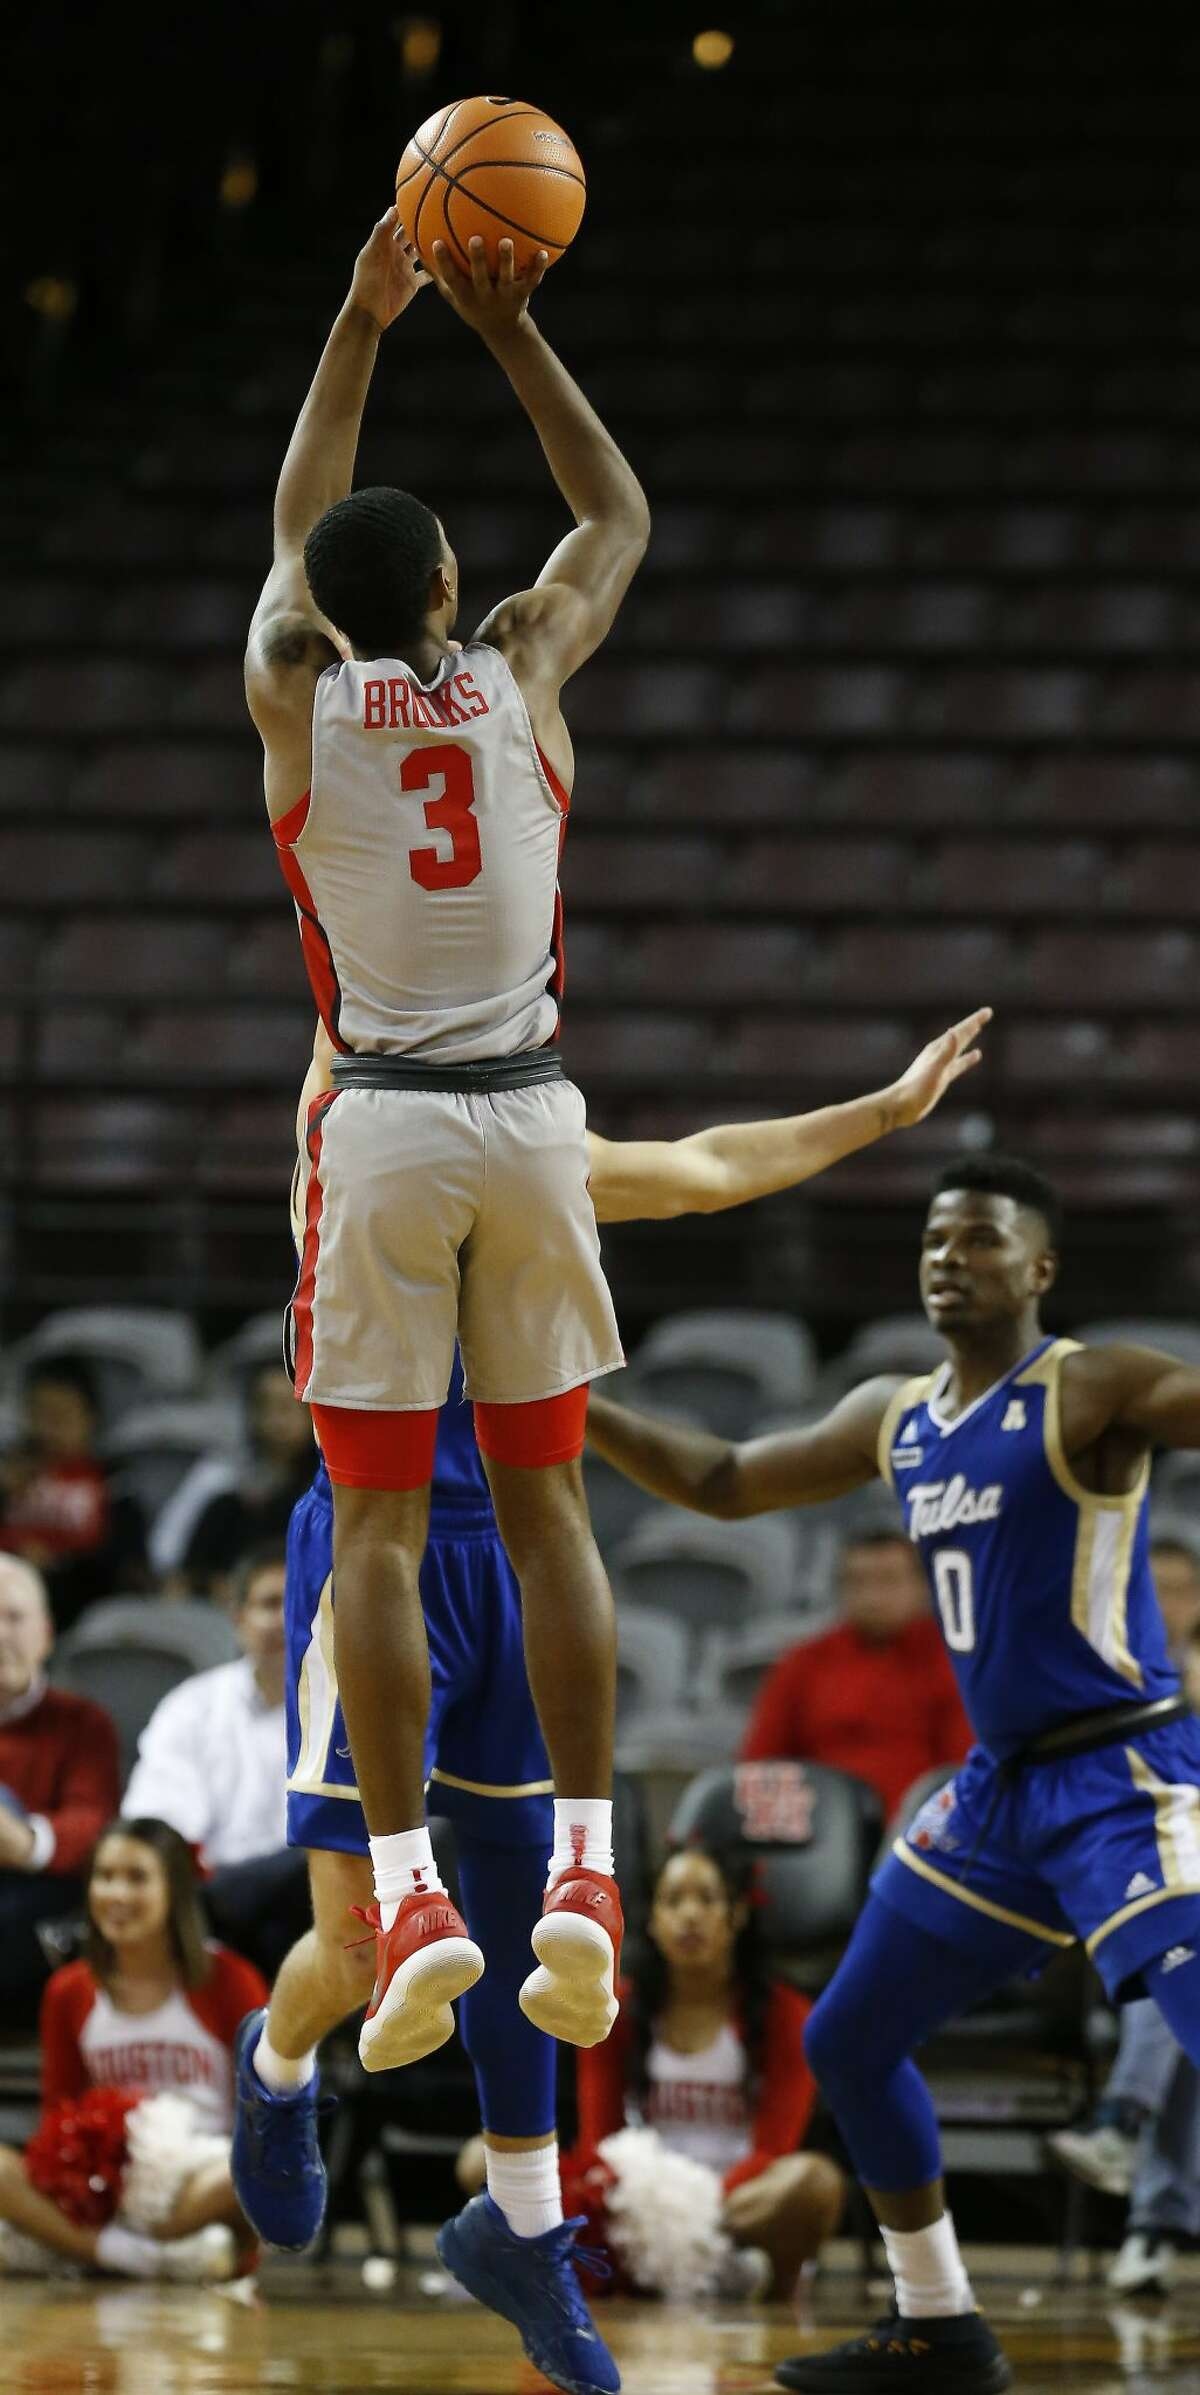 Houston guard Armoni Brooks (3) shoots a three-pointer during action at H&PE Arena, TSU Campus Thursday, Jan. 11, 2018, in Houston. ( Steve Gonzales / Houston Chronicle )